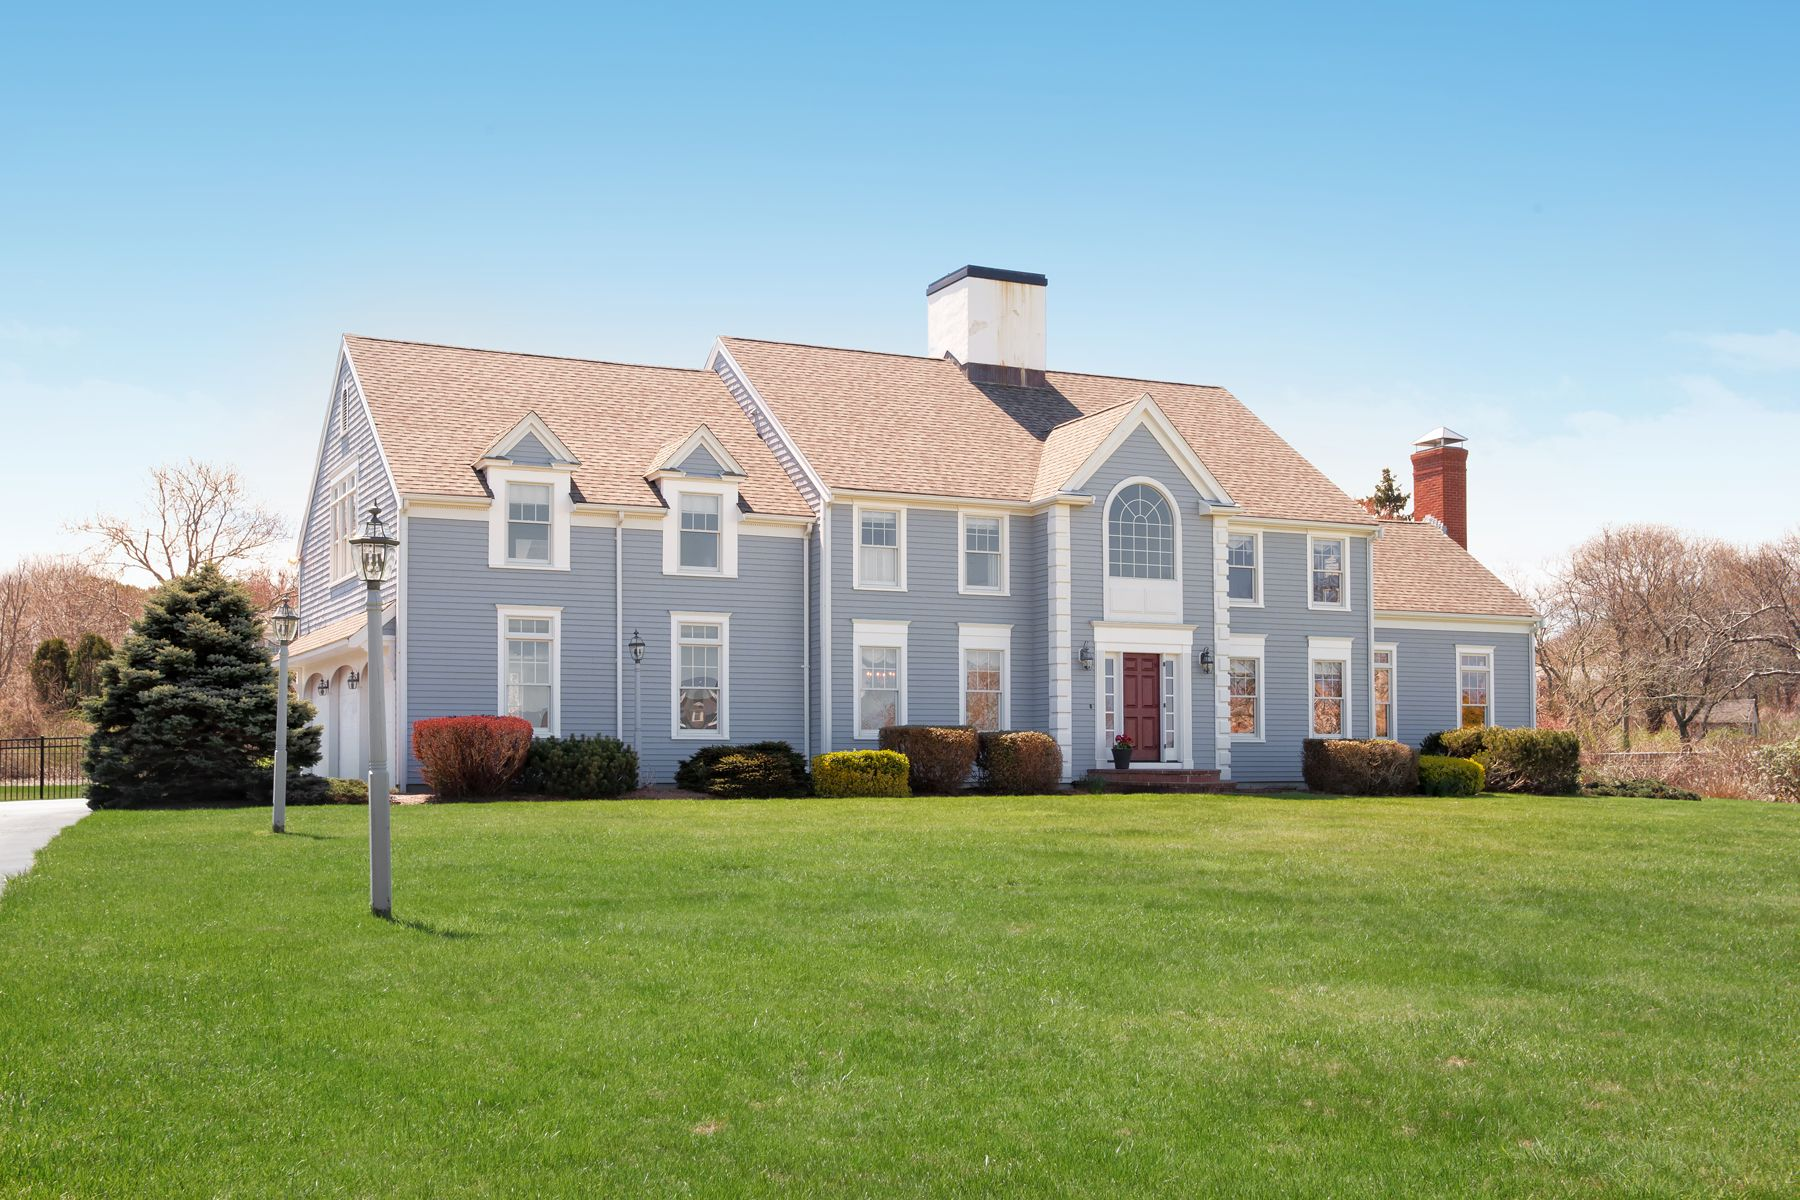 Single Family Home for Active at 40 Torrey Road East Sandwich, Massachusetts 02537 United States